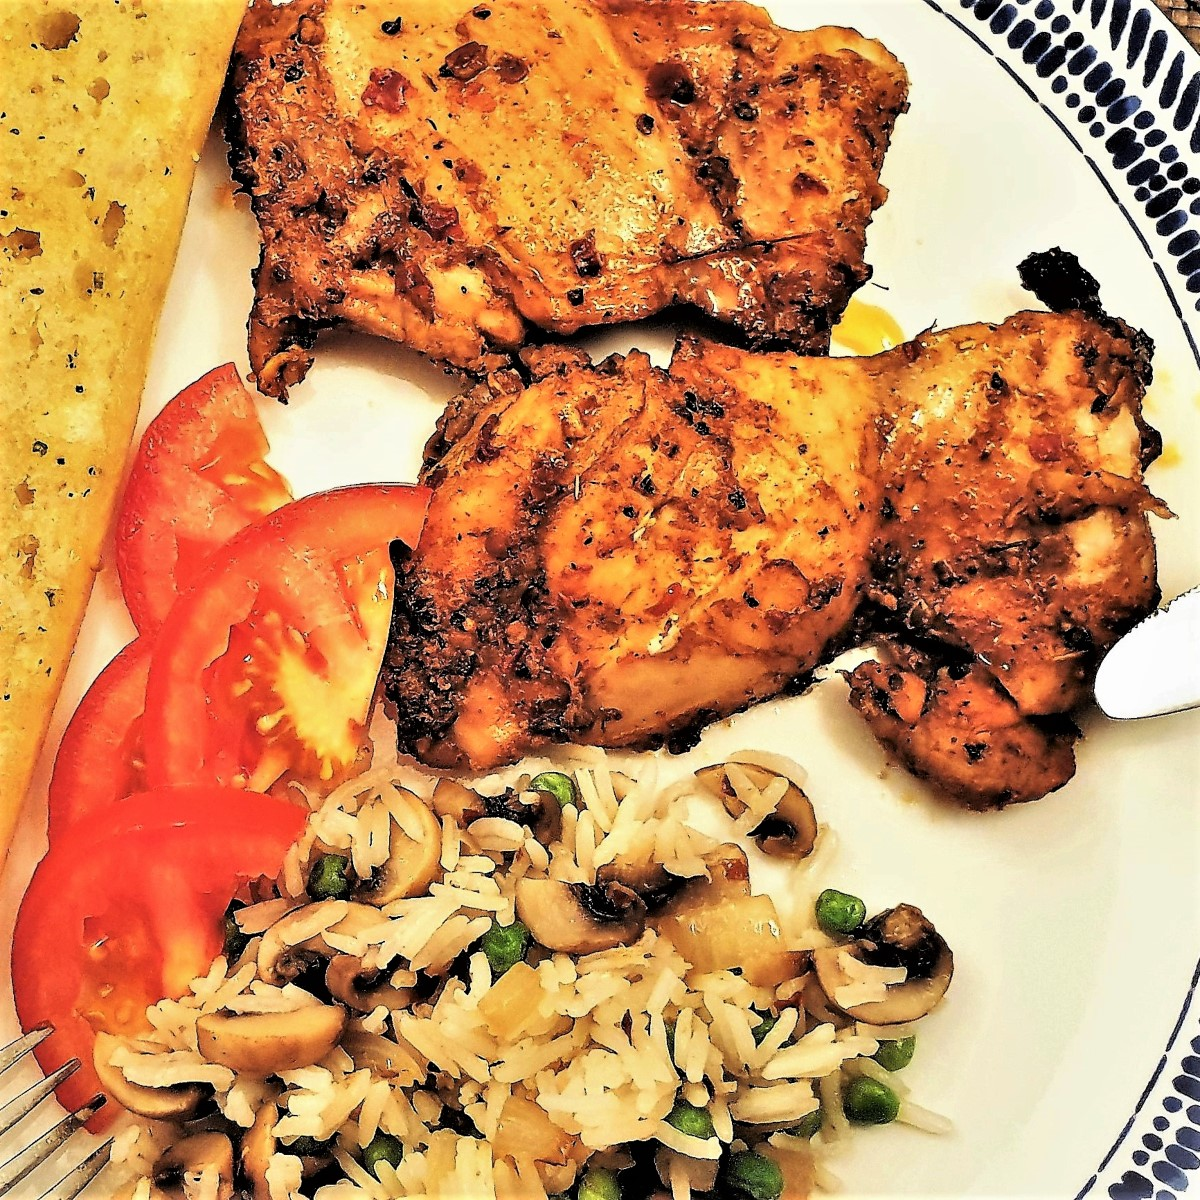 Two peri peri chicken thighs on a white plate with rice, tomatoes and garlic bread.